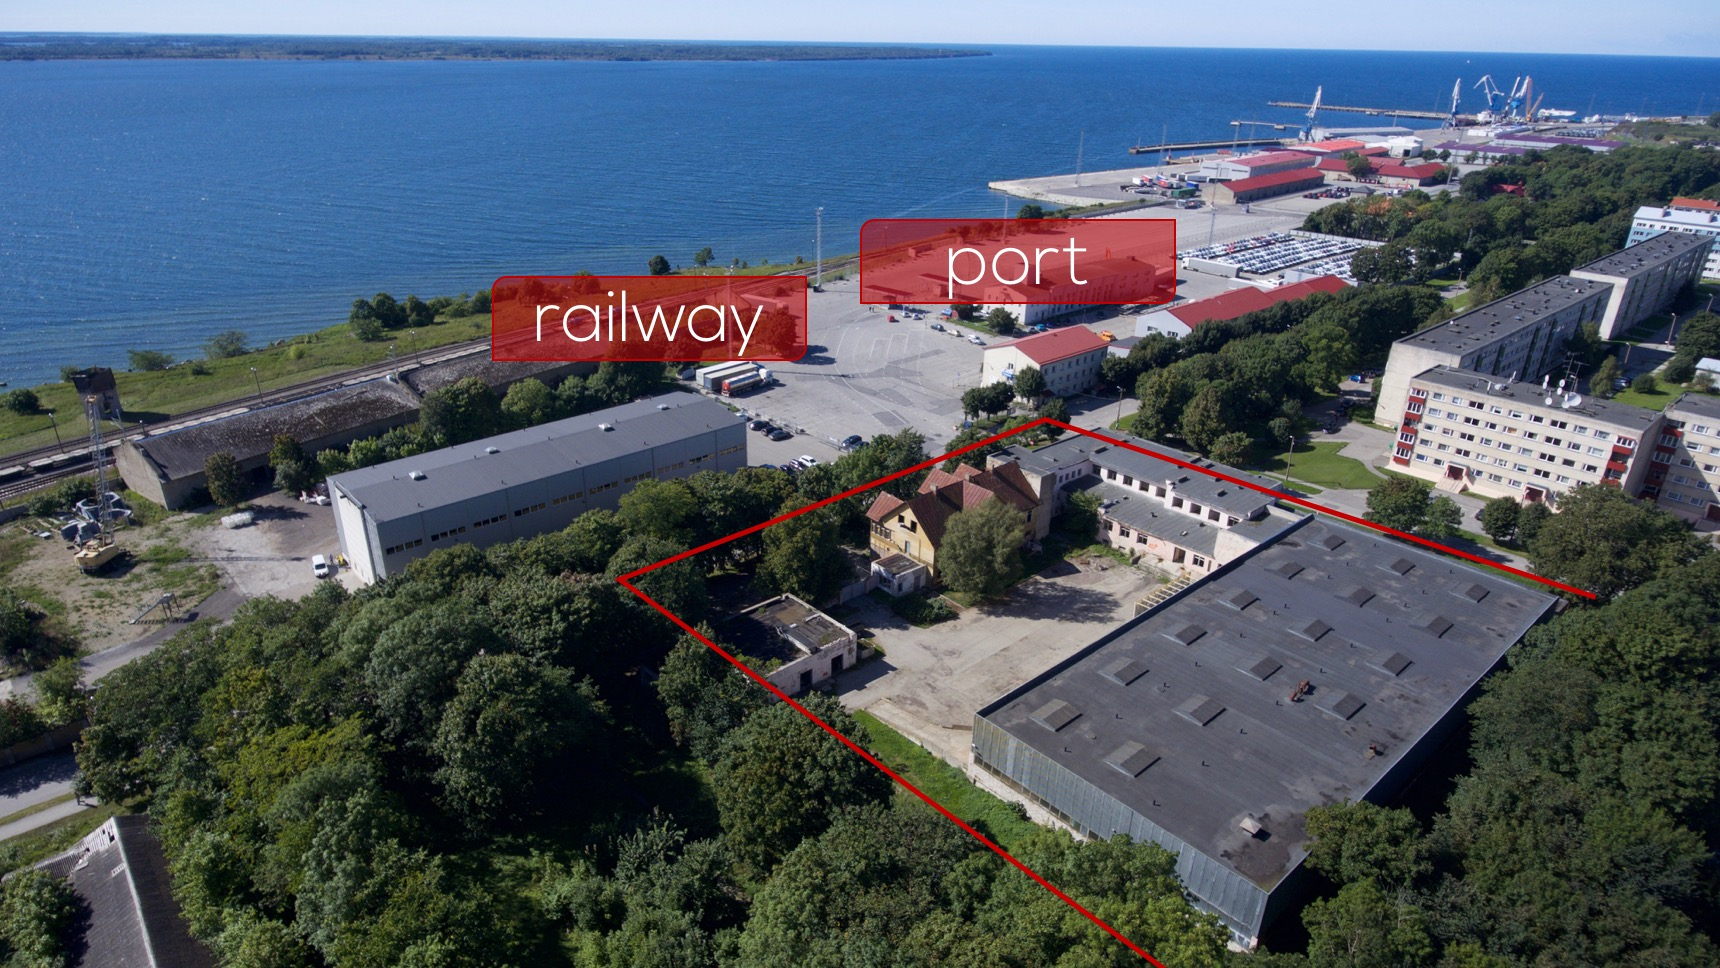 View from the sky, Kivi 2 and railway+port